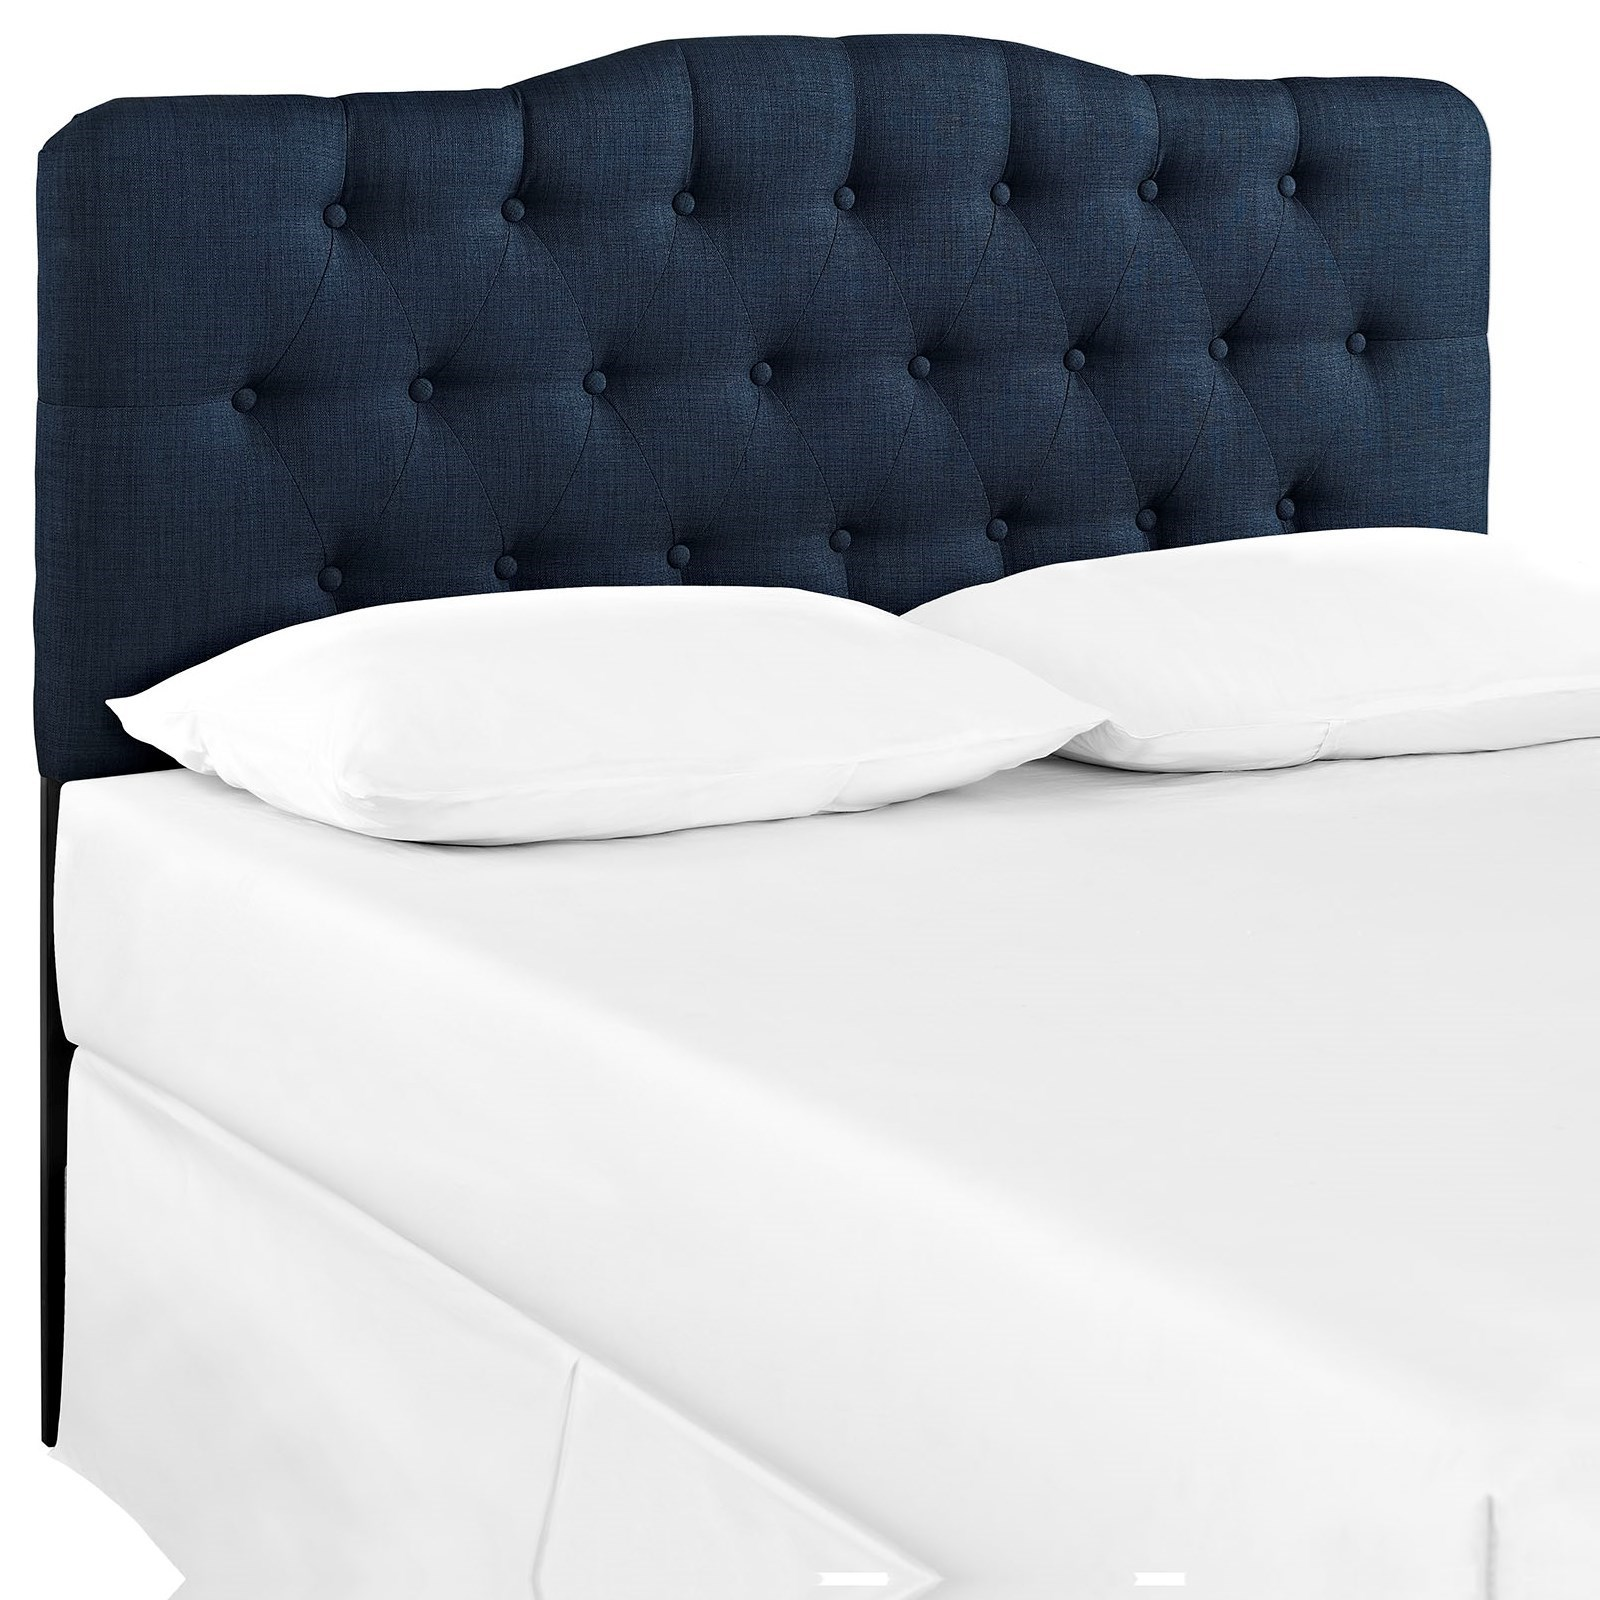 Annabel King Upholstered Headboard by Modway at Value City Furniture